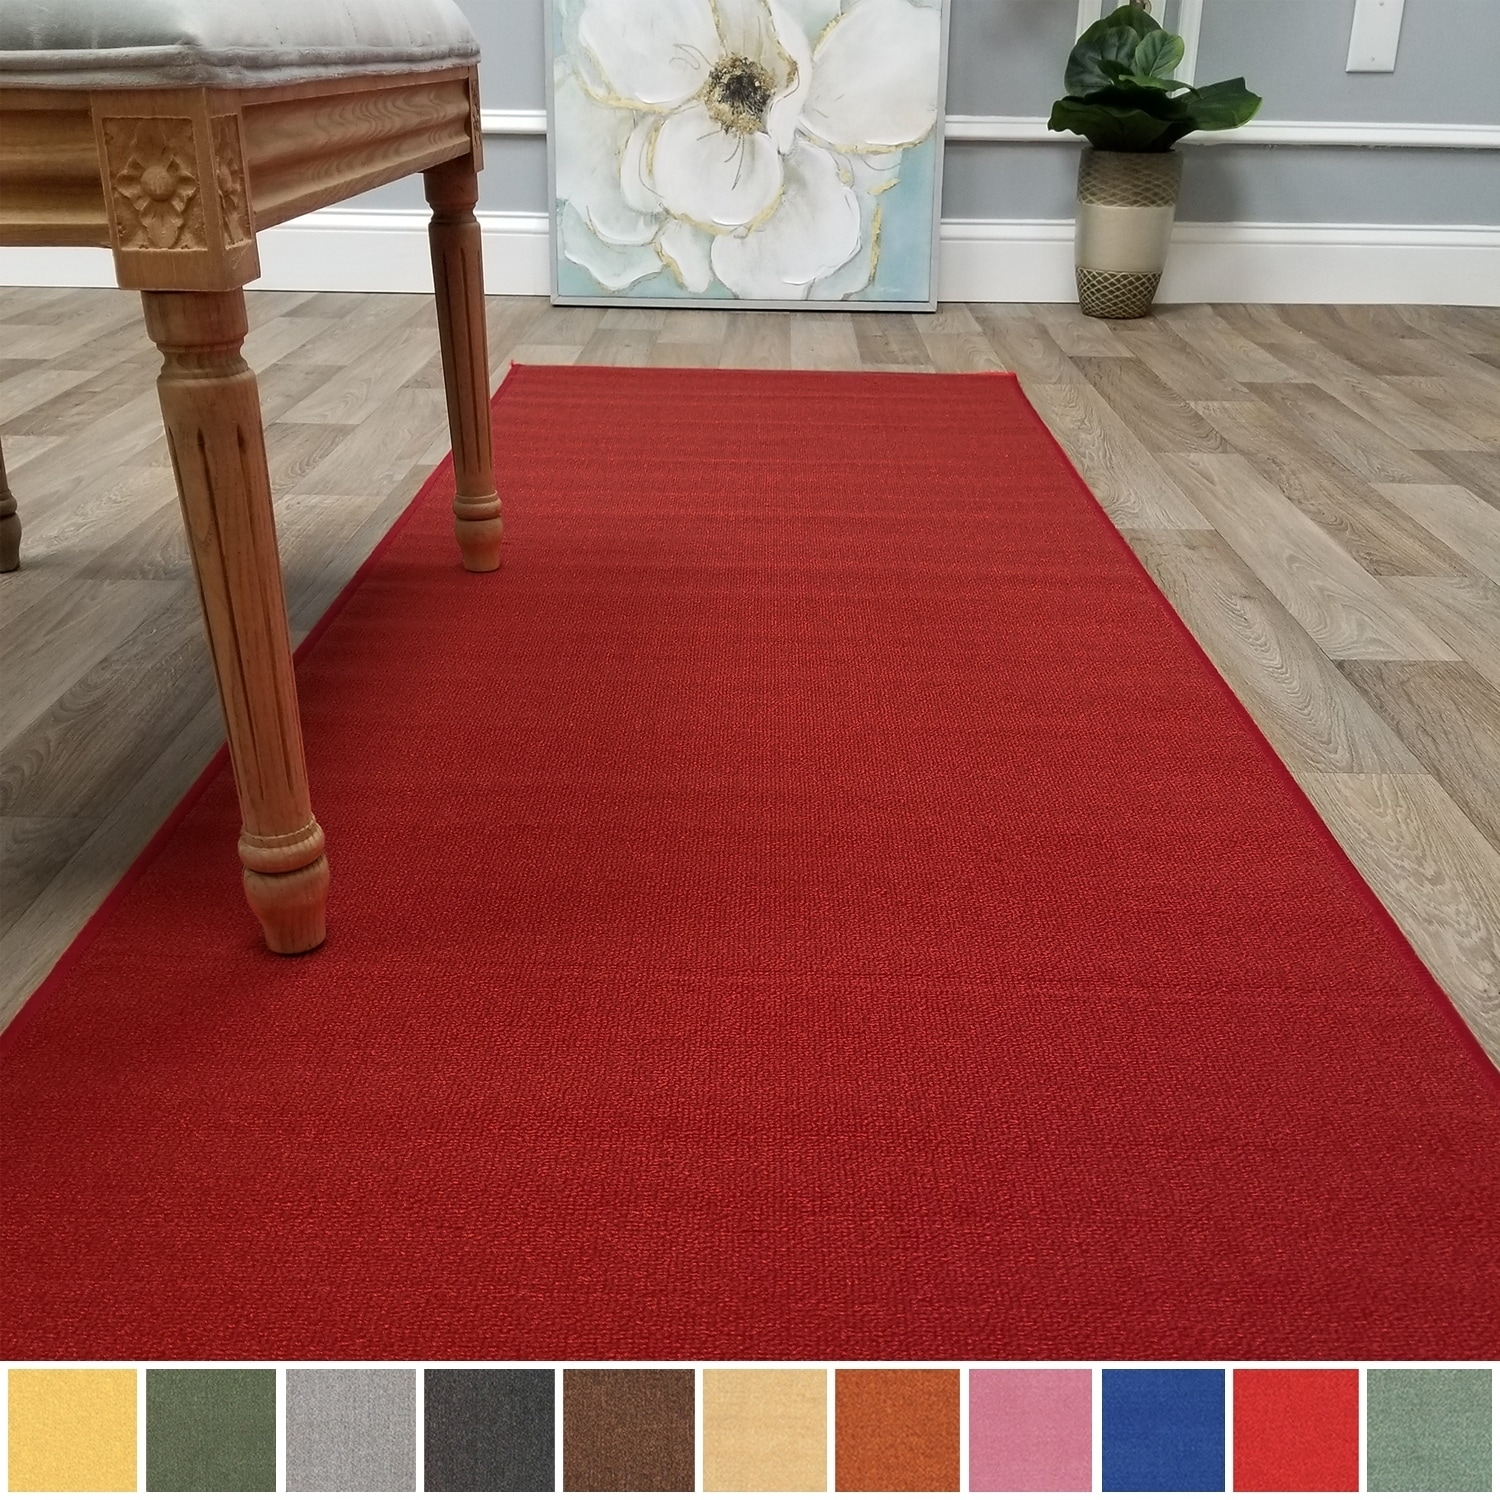 2x8 runner rug. Shop Kapaqua Solid Colored Non-Slip Runner Rug Rubber Backed 2x8 - 1\u002710\